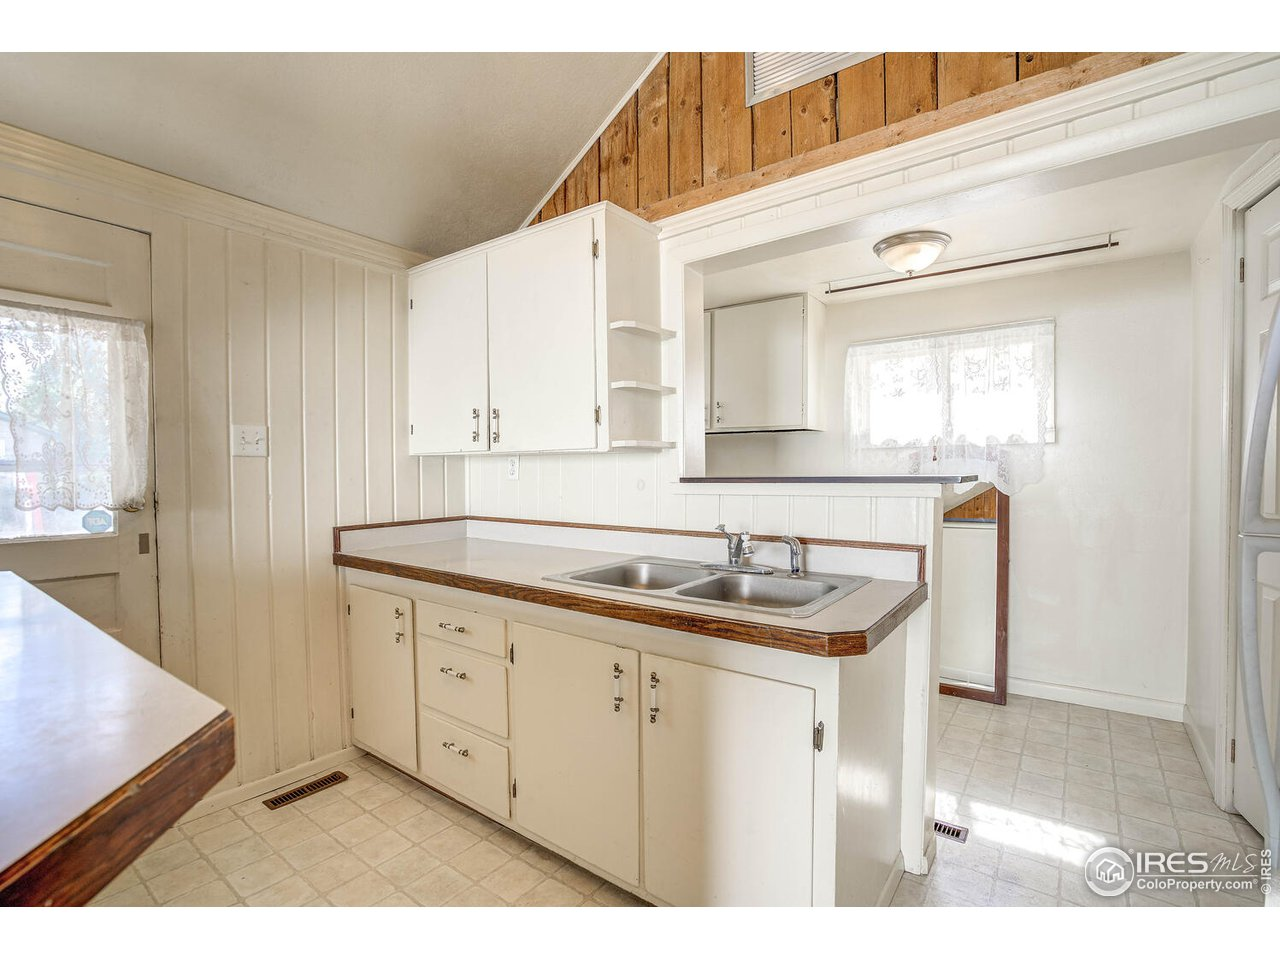 Kitchen refrigerator and gas range included!